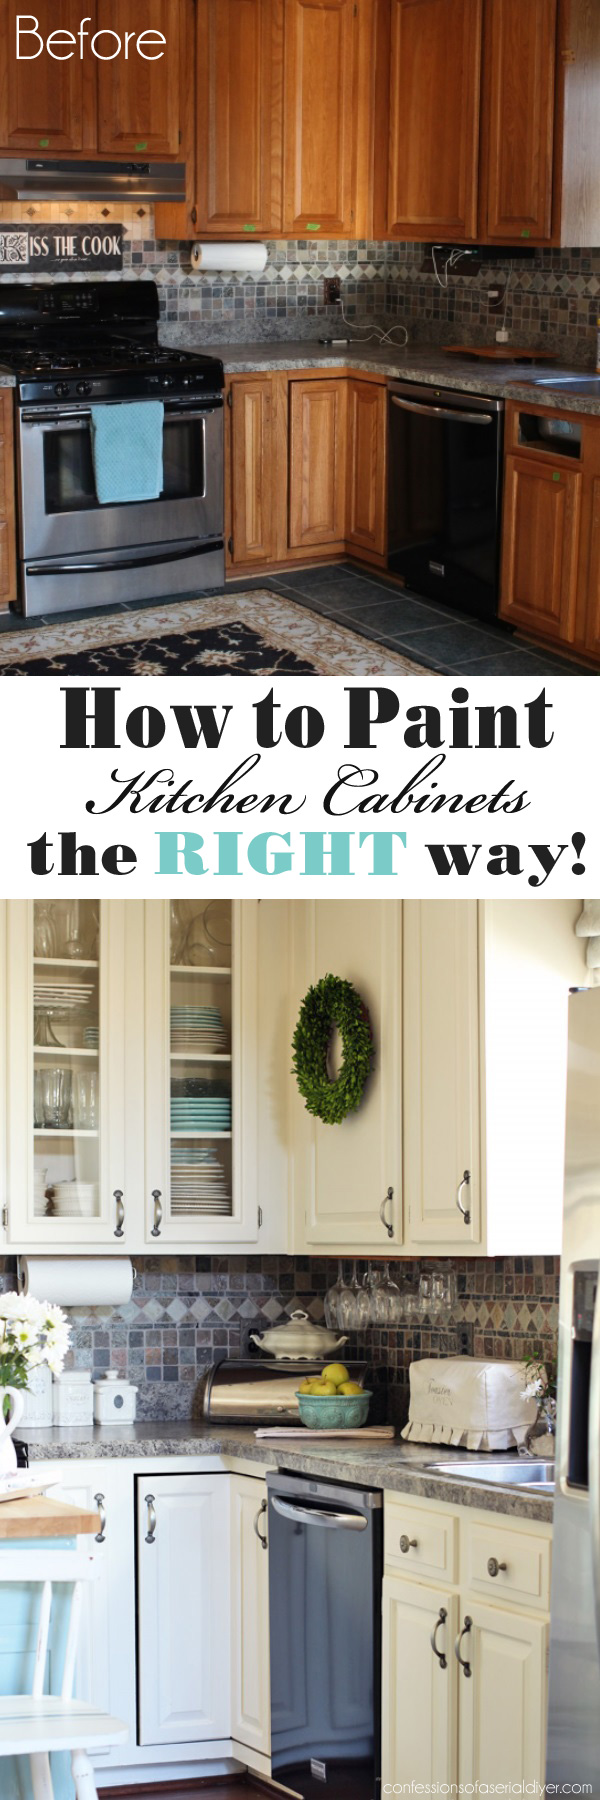 How to paint kitchen cabinets a step by step guide for What kind of paint to use on kitchen cabinets for green canvas wall art